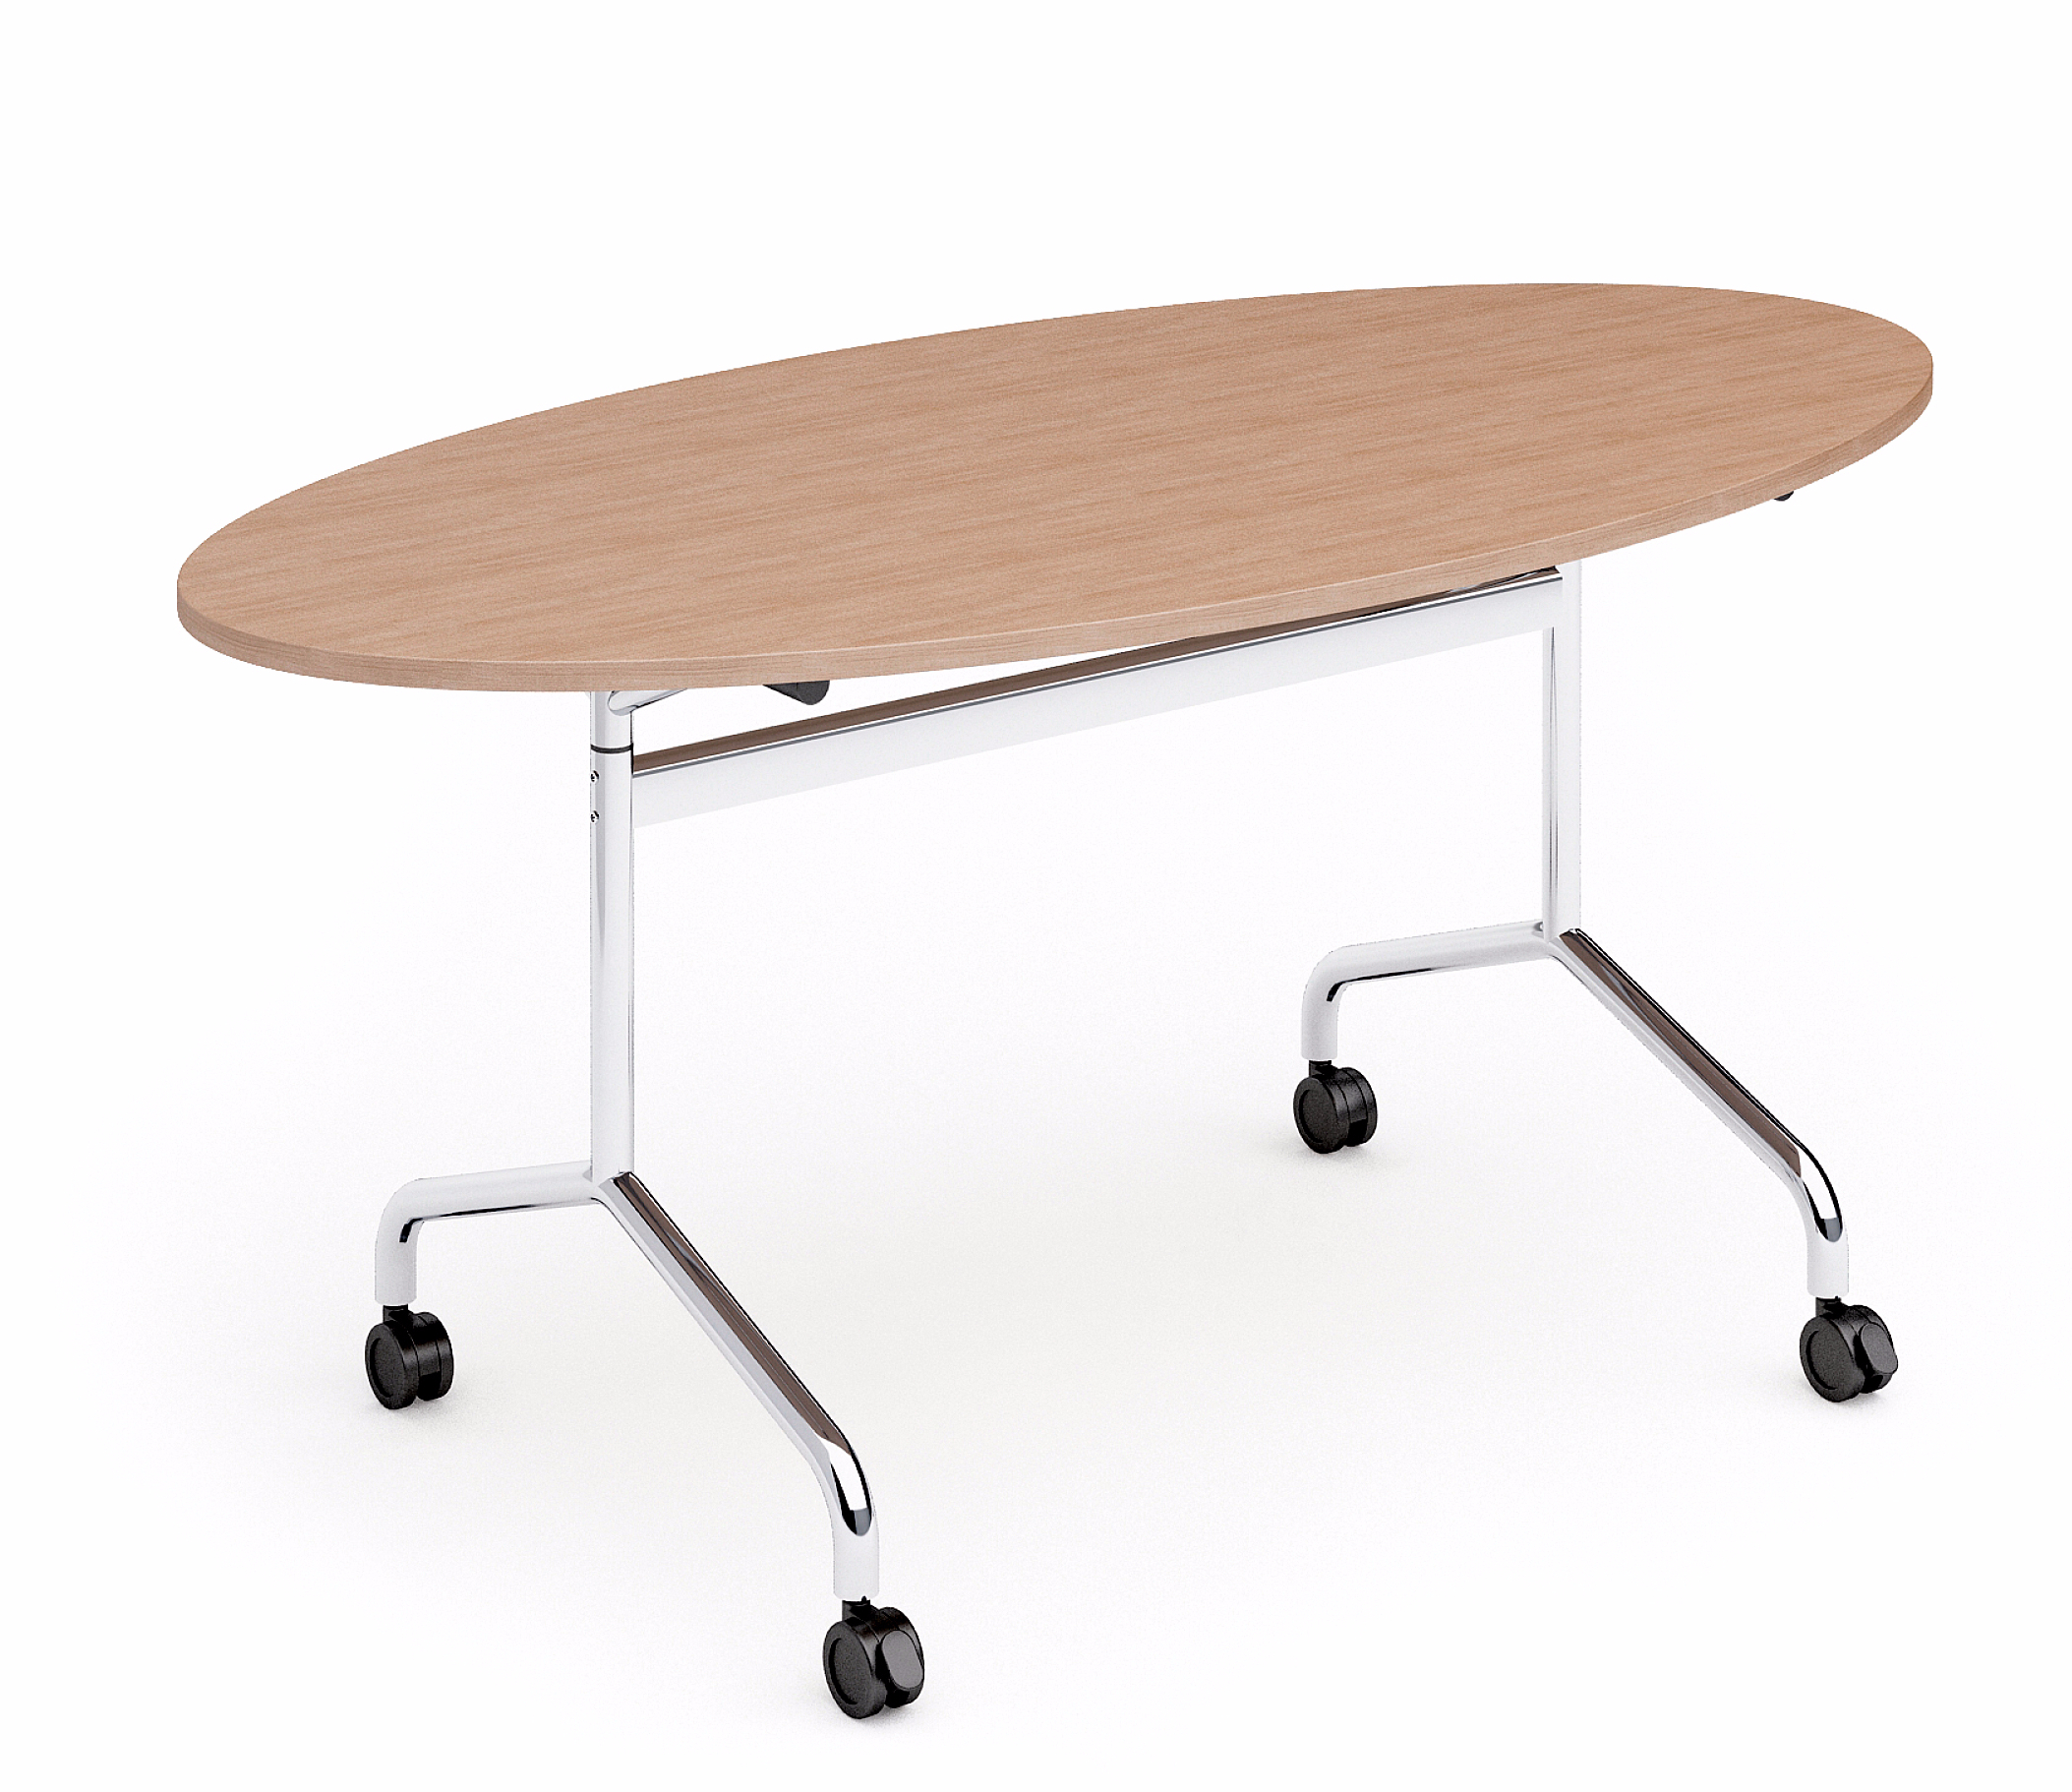 Table de réunion ovale pliable Flib